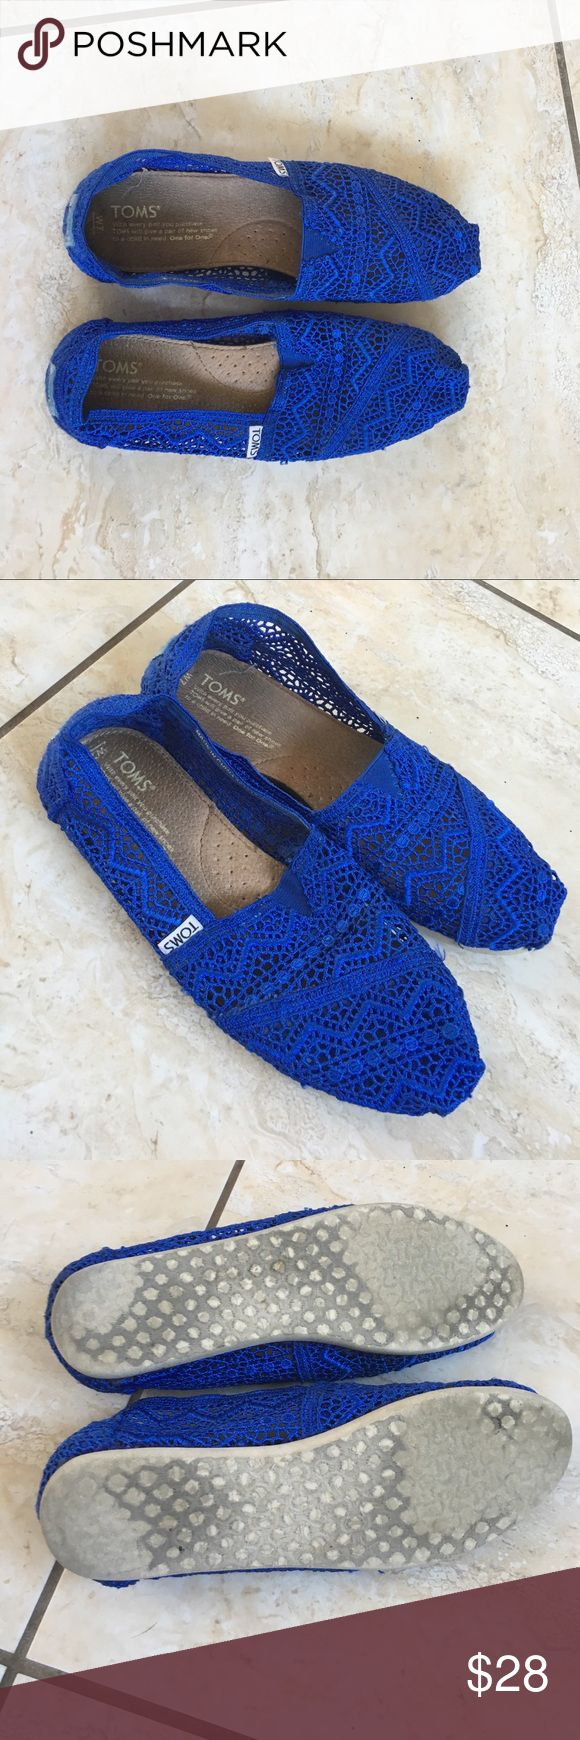 Woven royal blue TOMS Gently worn. Very good condition. Beautiful blue. Perfect for summer. TOMS Shoes Flats & Loafers